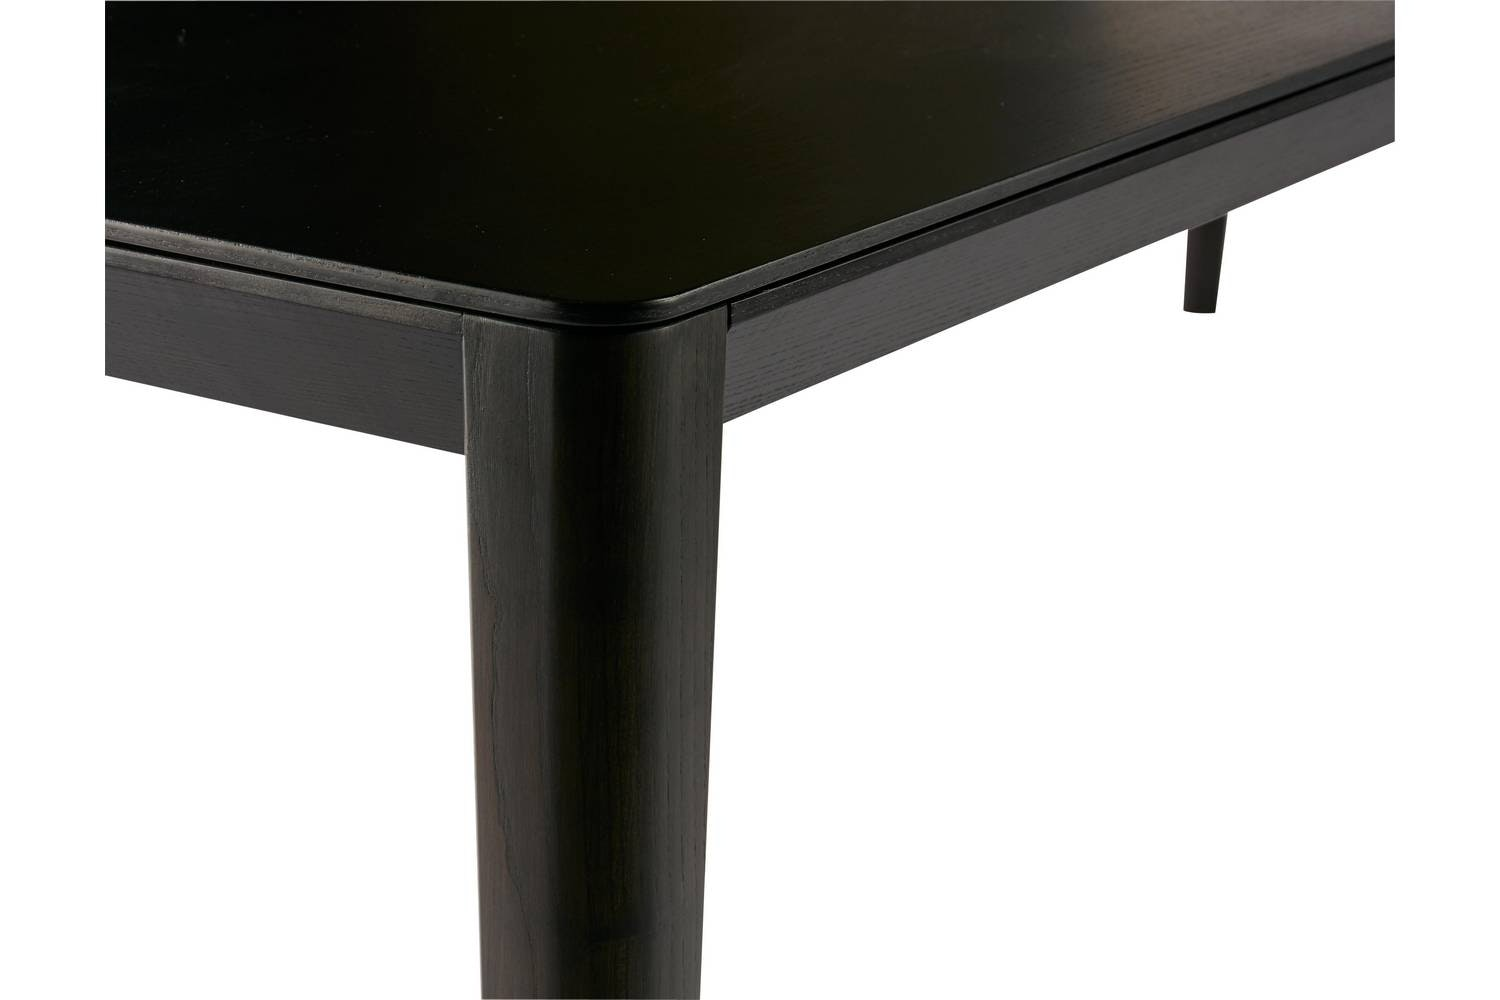 Smith Table by Metrica for SP01 Space Furniture : SP102800120 from www.spacefurniture.com.au size 1500 x 1000 jpeg 37kB